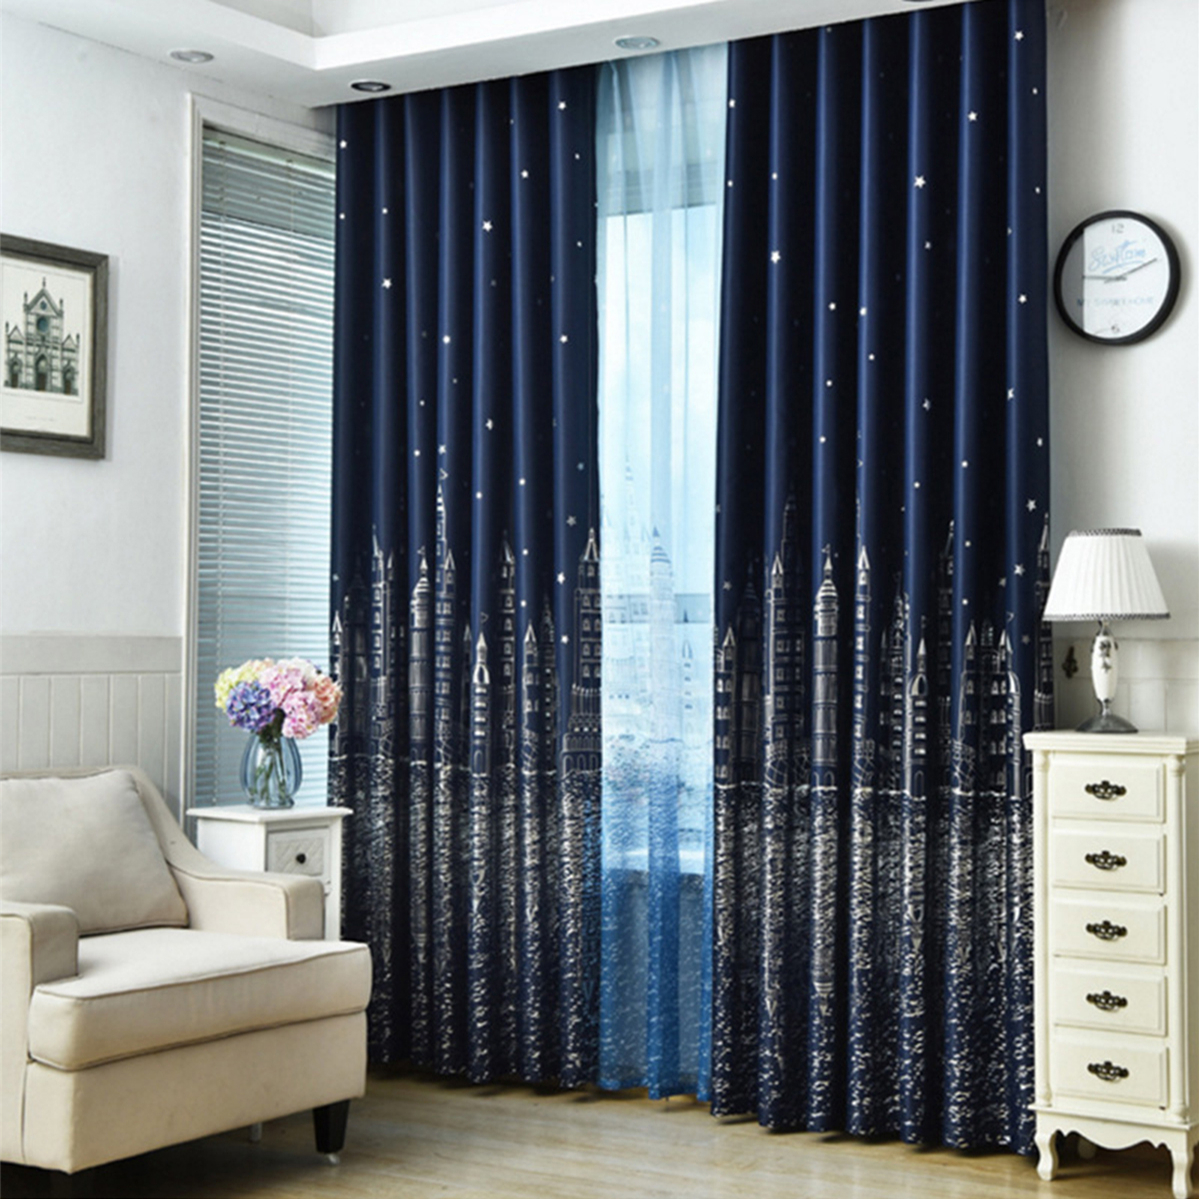 Modern Blackout Curtains for Living Room Bedroom Curtains for Window Treatment Drapes Solid Finished Blackout Curtains 100X250CM in Curtains from Home Garden